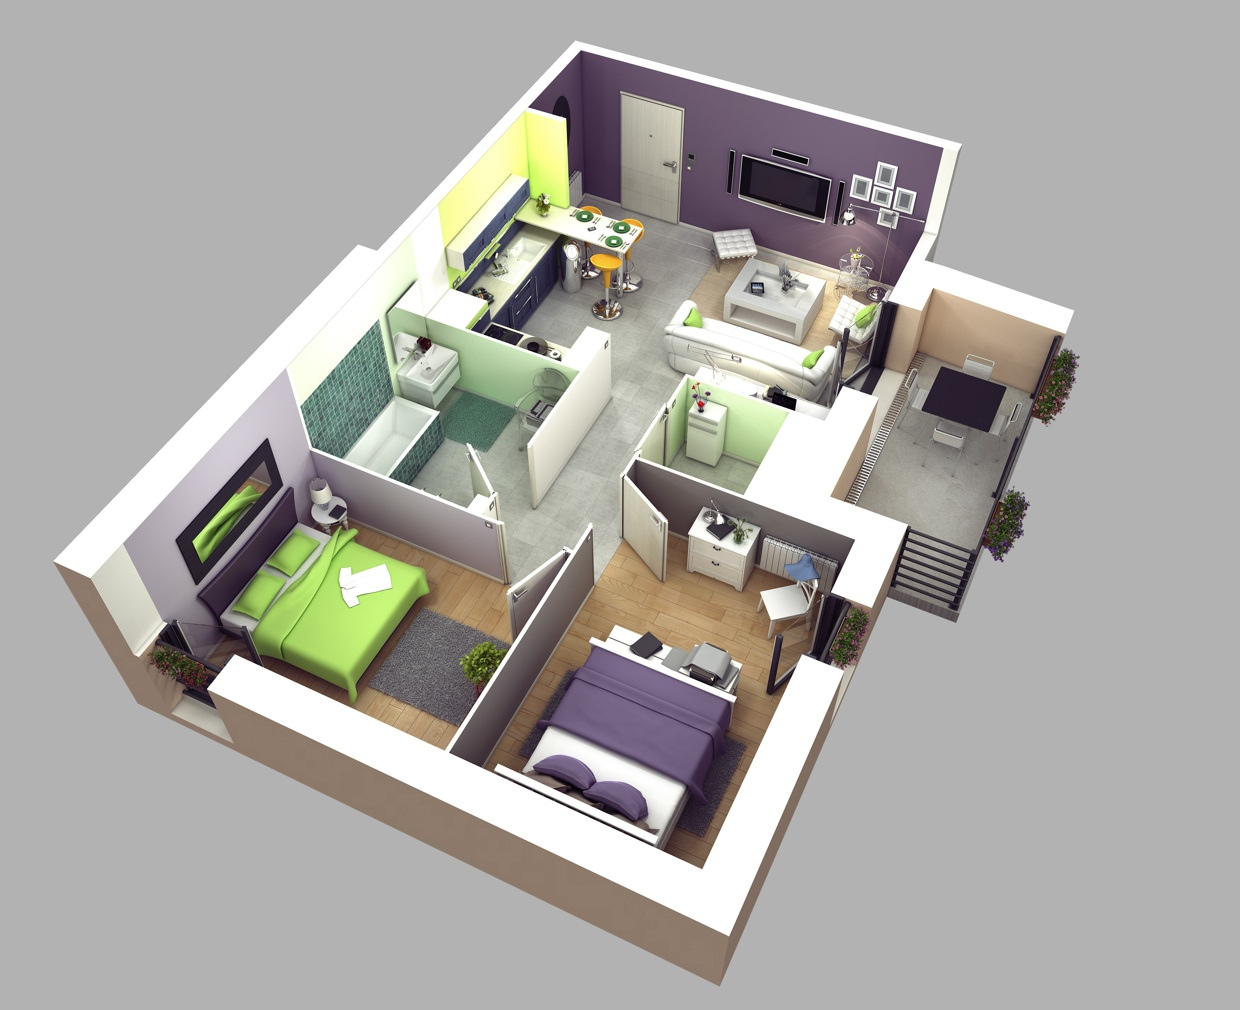 2 bedroom apartmenthouse plans - Simple House Plan With 2 Bedrooms